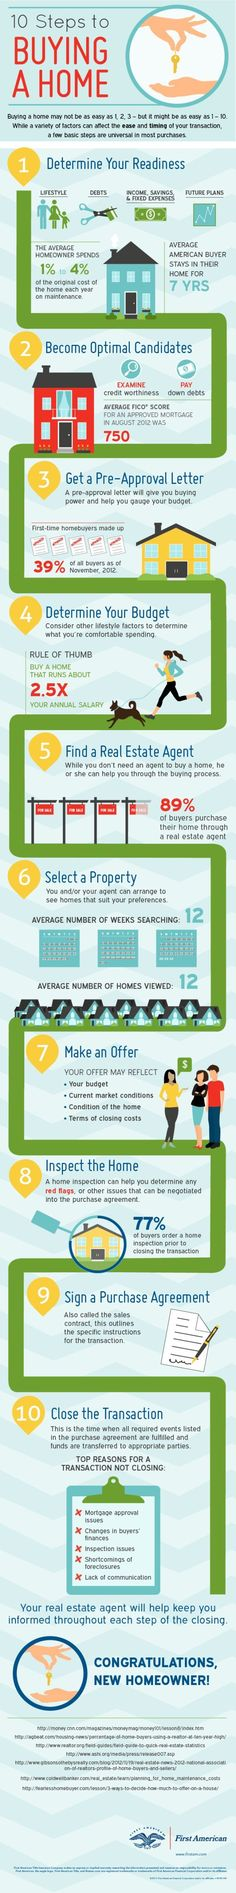 Great tips, finding a real estate agent first can be helpful, they can help guide you through this process. 10 Steps to Buying a Home Infographic First American Title buy a home buying your first home Home Buying Tips, Buying Your First Home, Home Buying Process, Purchase Process, Up House, Sell House, First Time Home Buyers, Real Estate Tips, Home Ownership